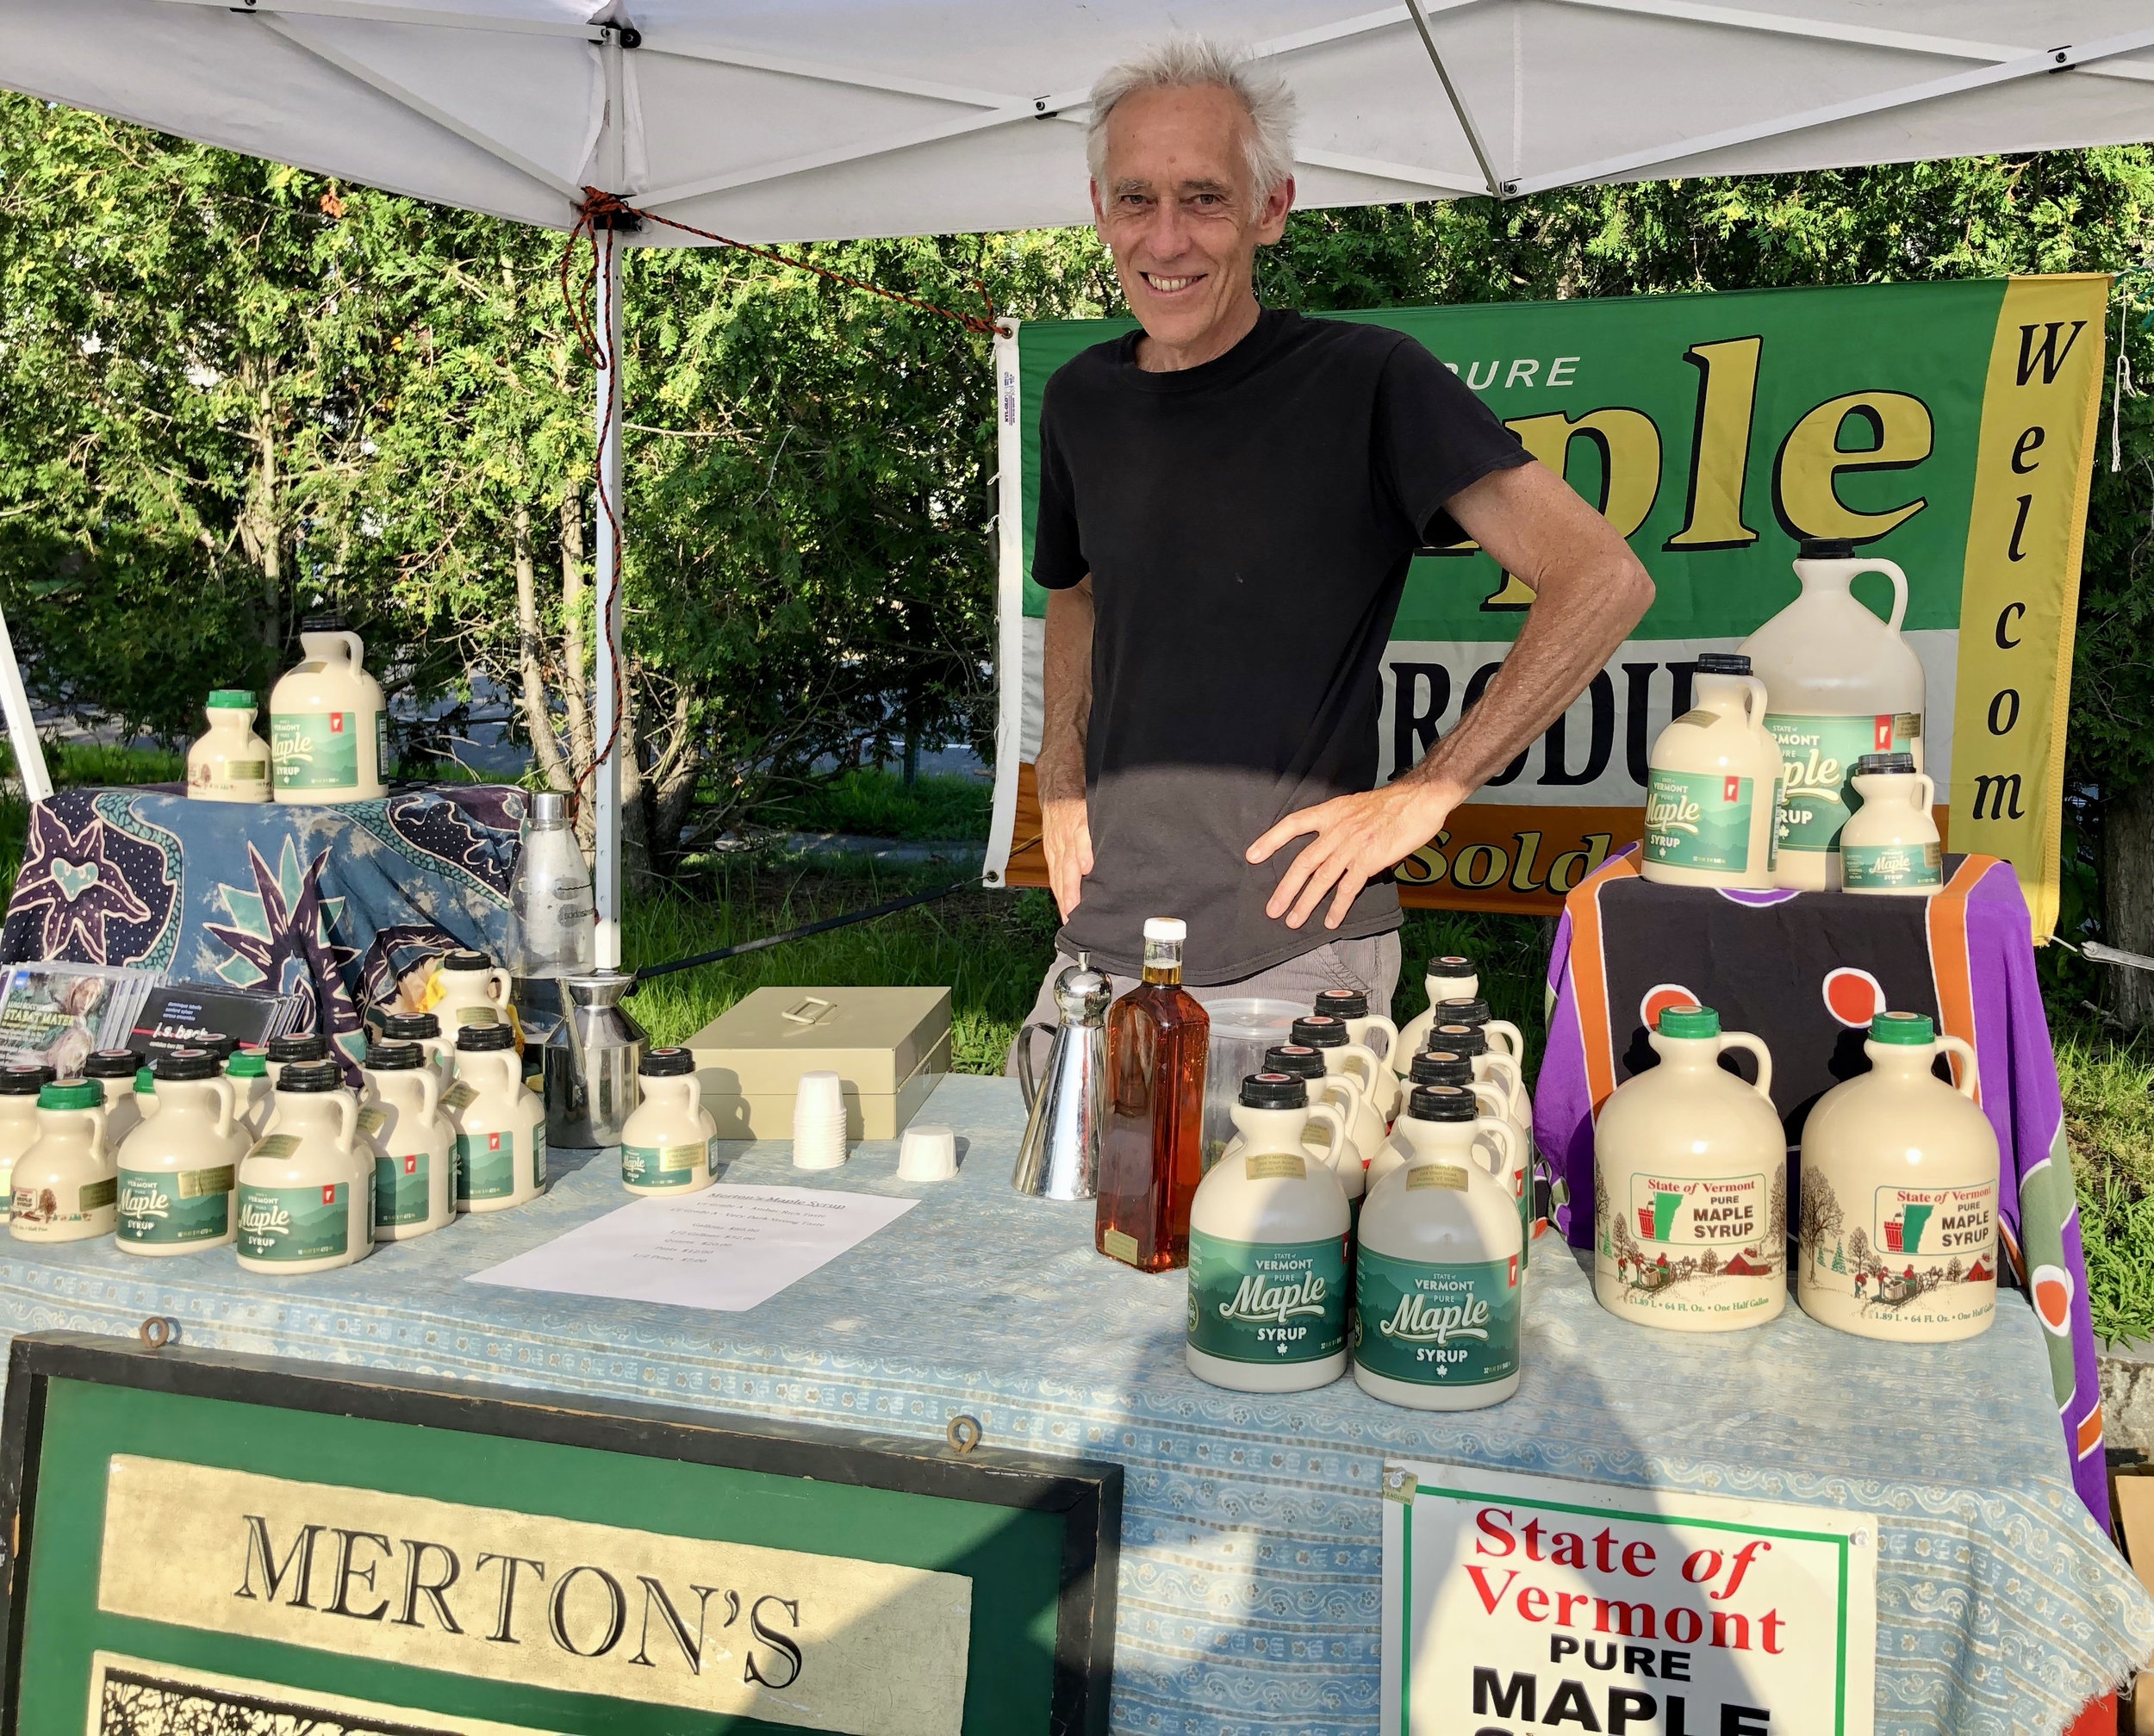 Merton's Maple Syrup - Putney, VTMonthly: 7/25, 8/8, 9/12, 10/10, 10/31Pure maple syrup and maple products from Vermont.